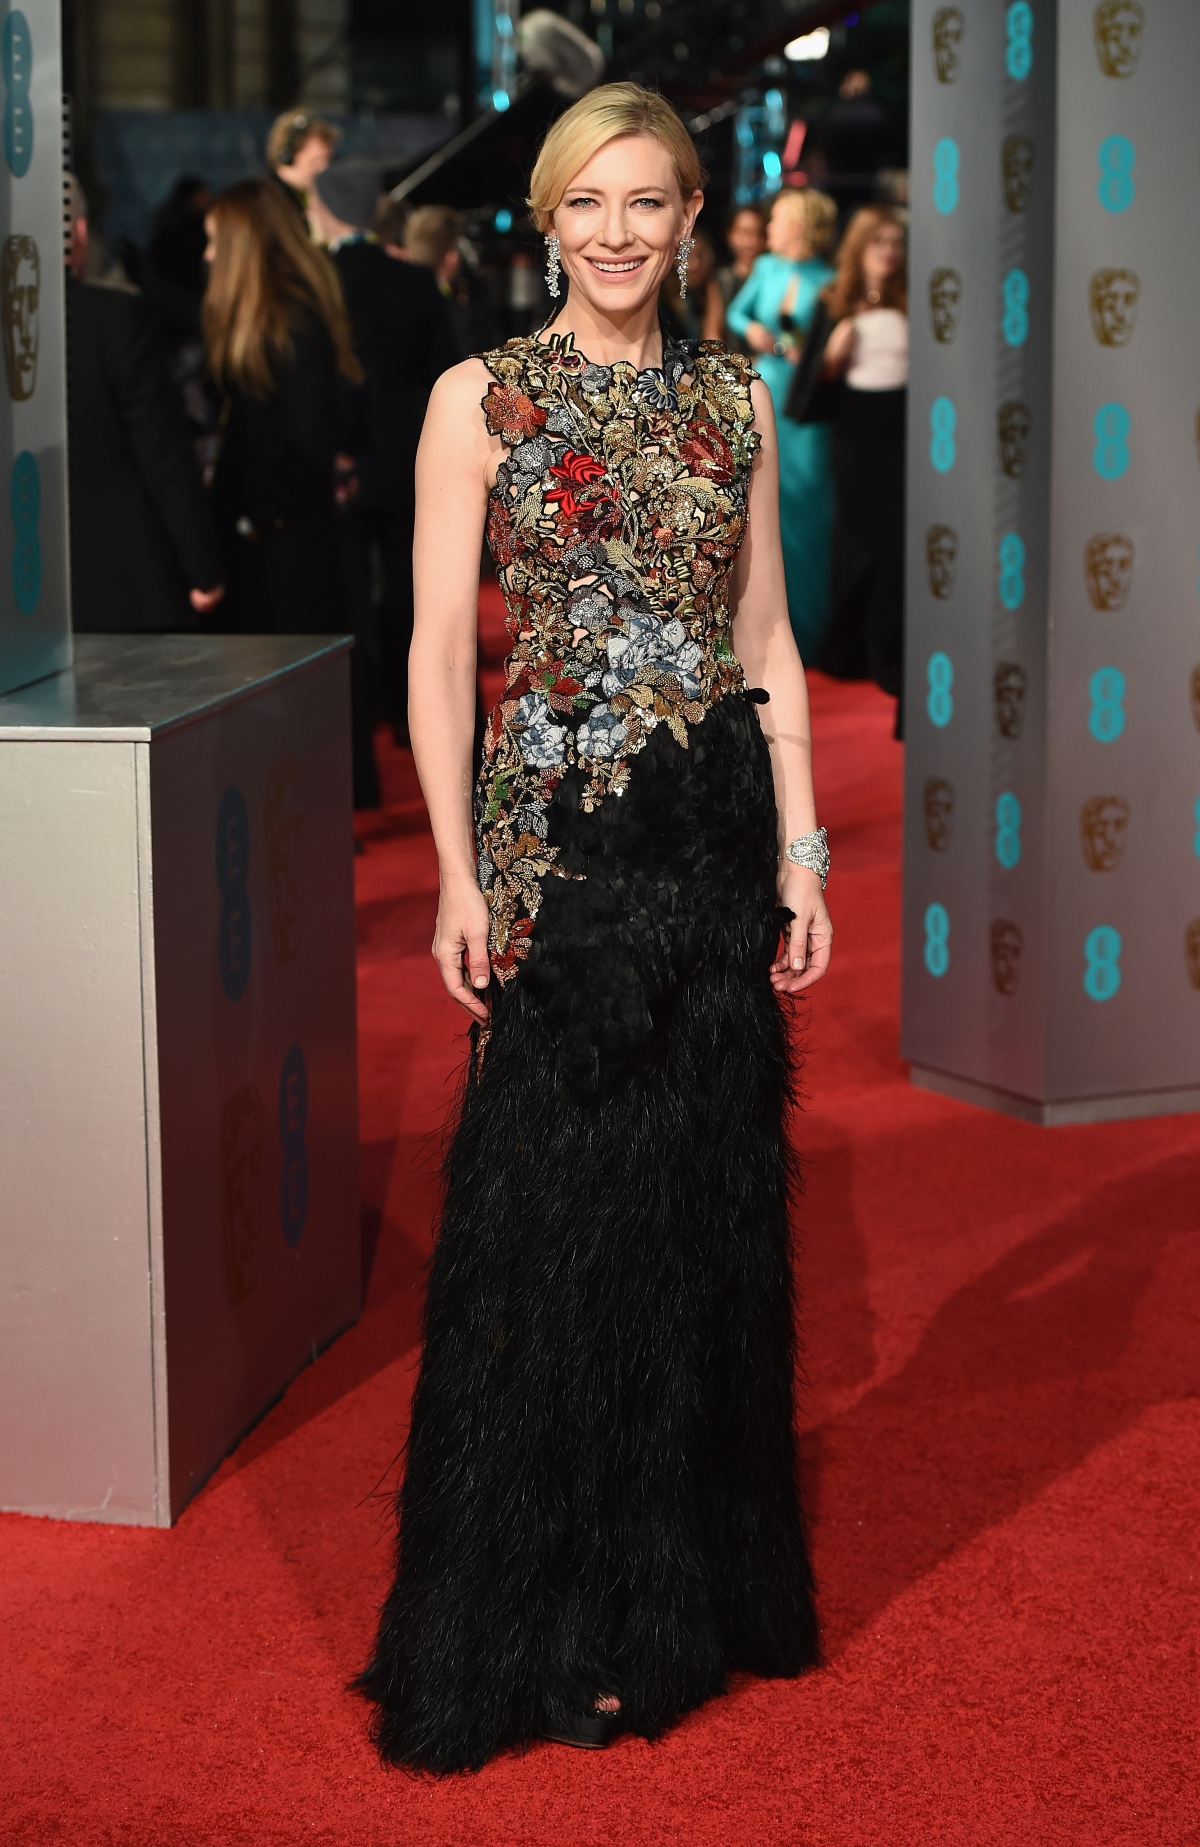 Baftas 2016 Best Dressed Red Carpet Stars From Cate